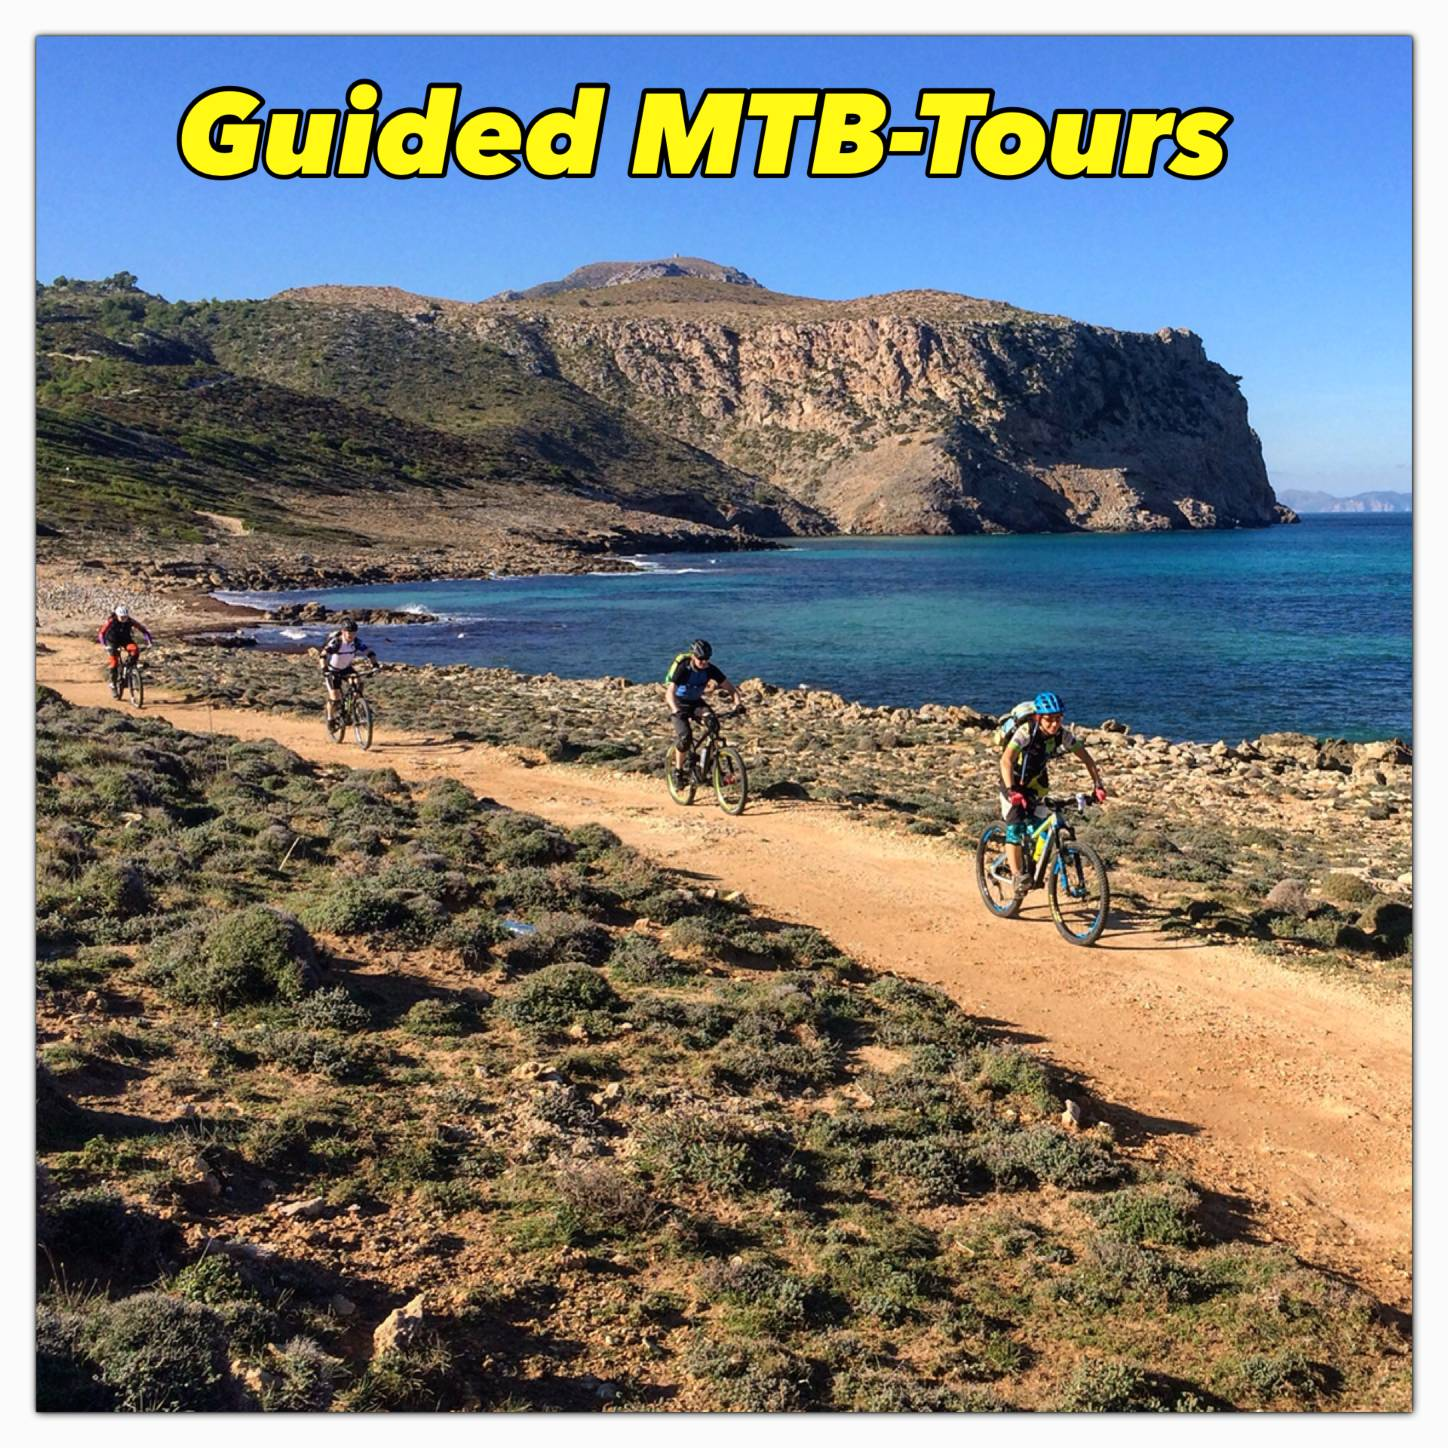 Guided MTB-Tours in Majorca